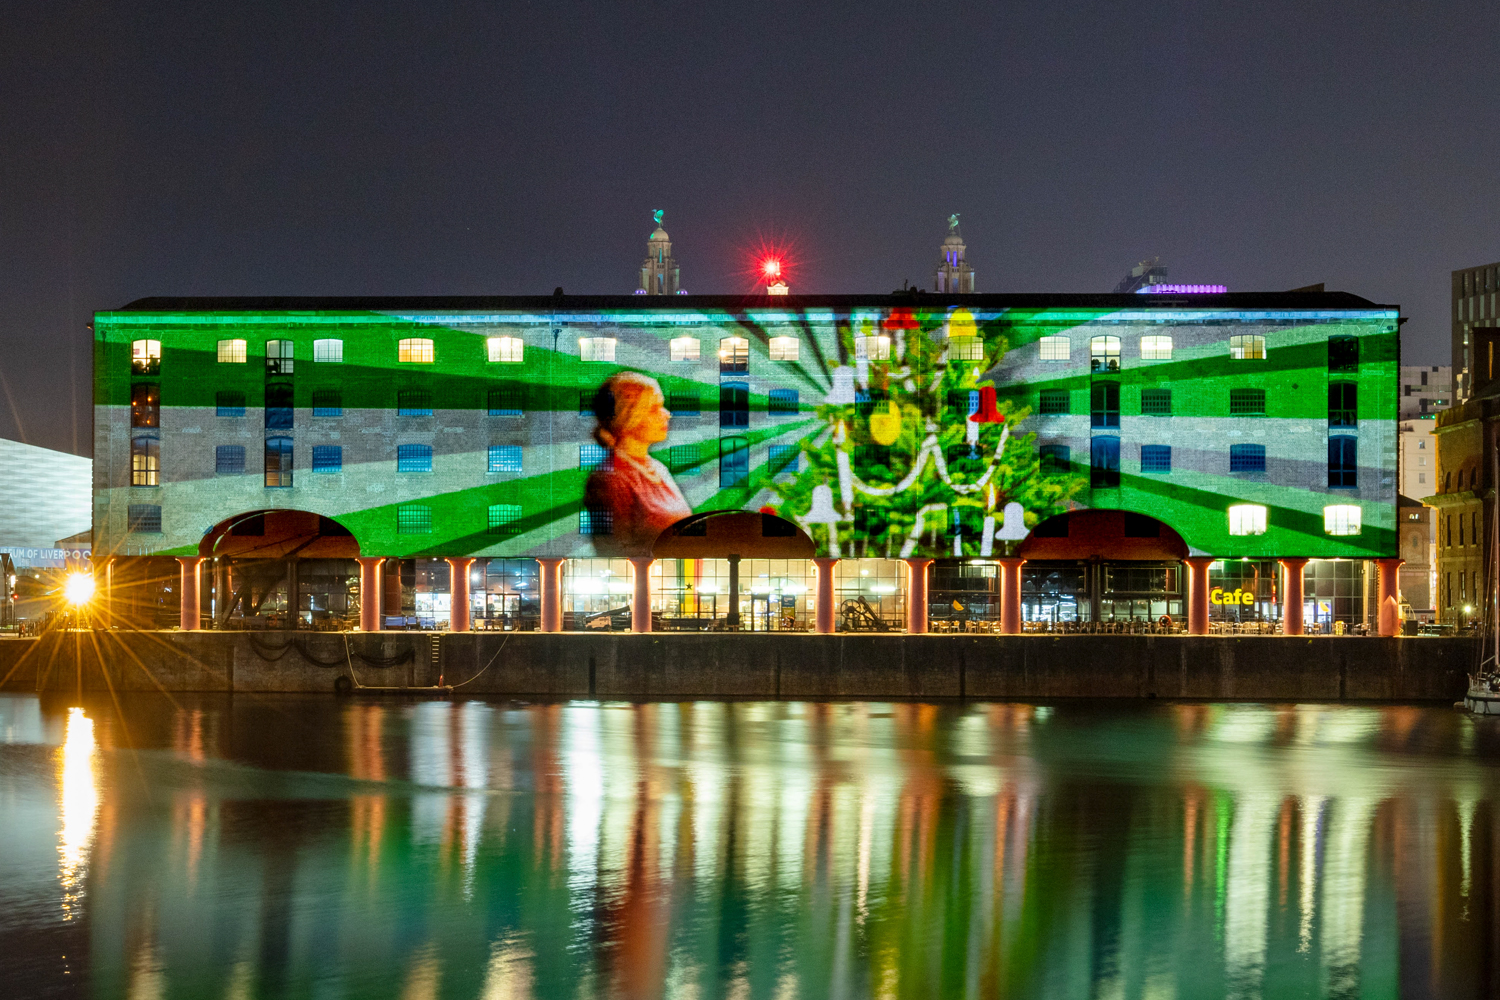 Liverpool projections, Christmas projections, 3d projection mapping